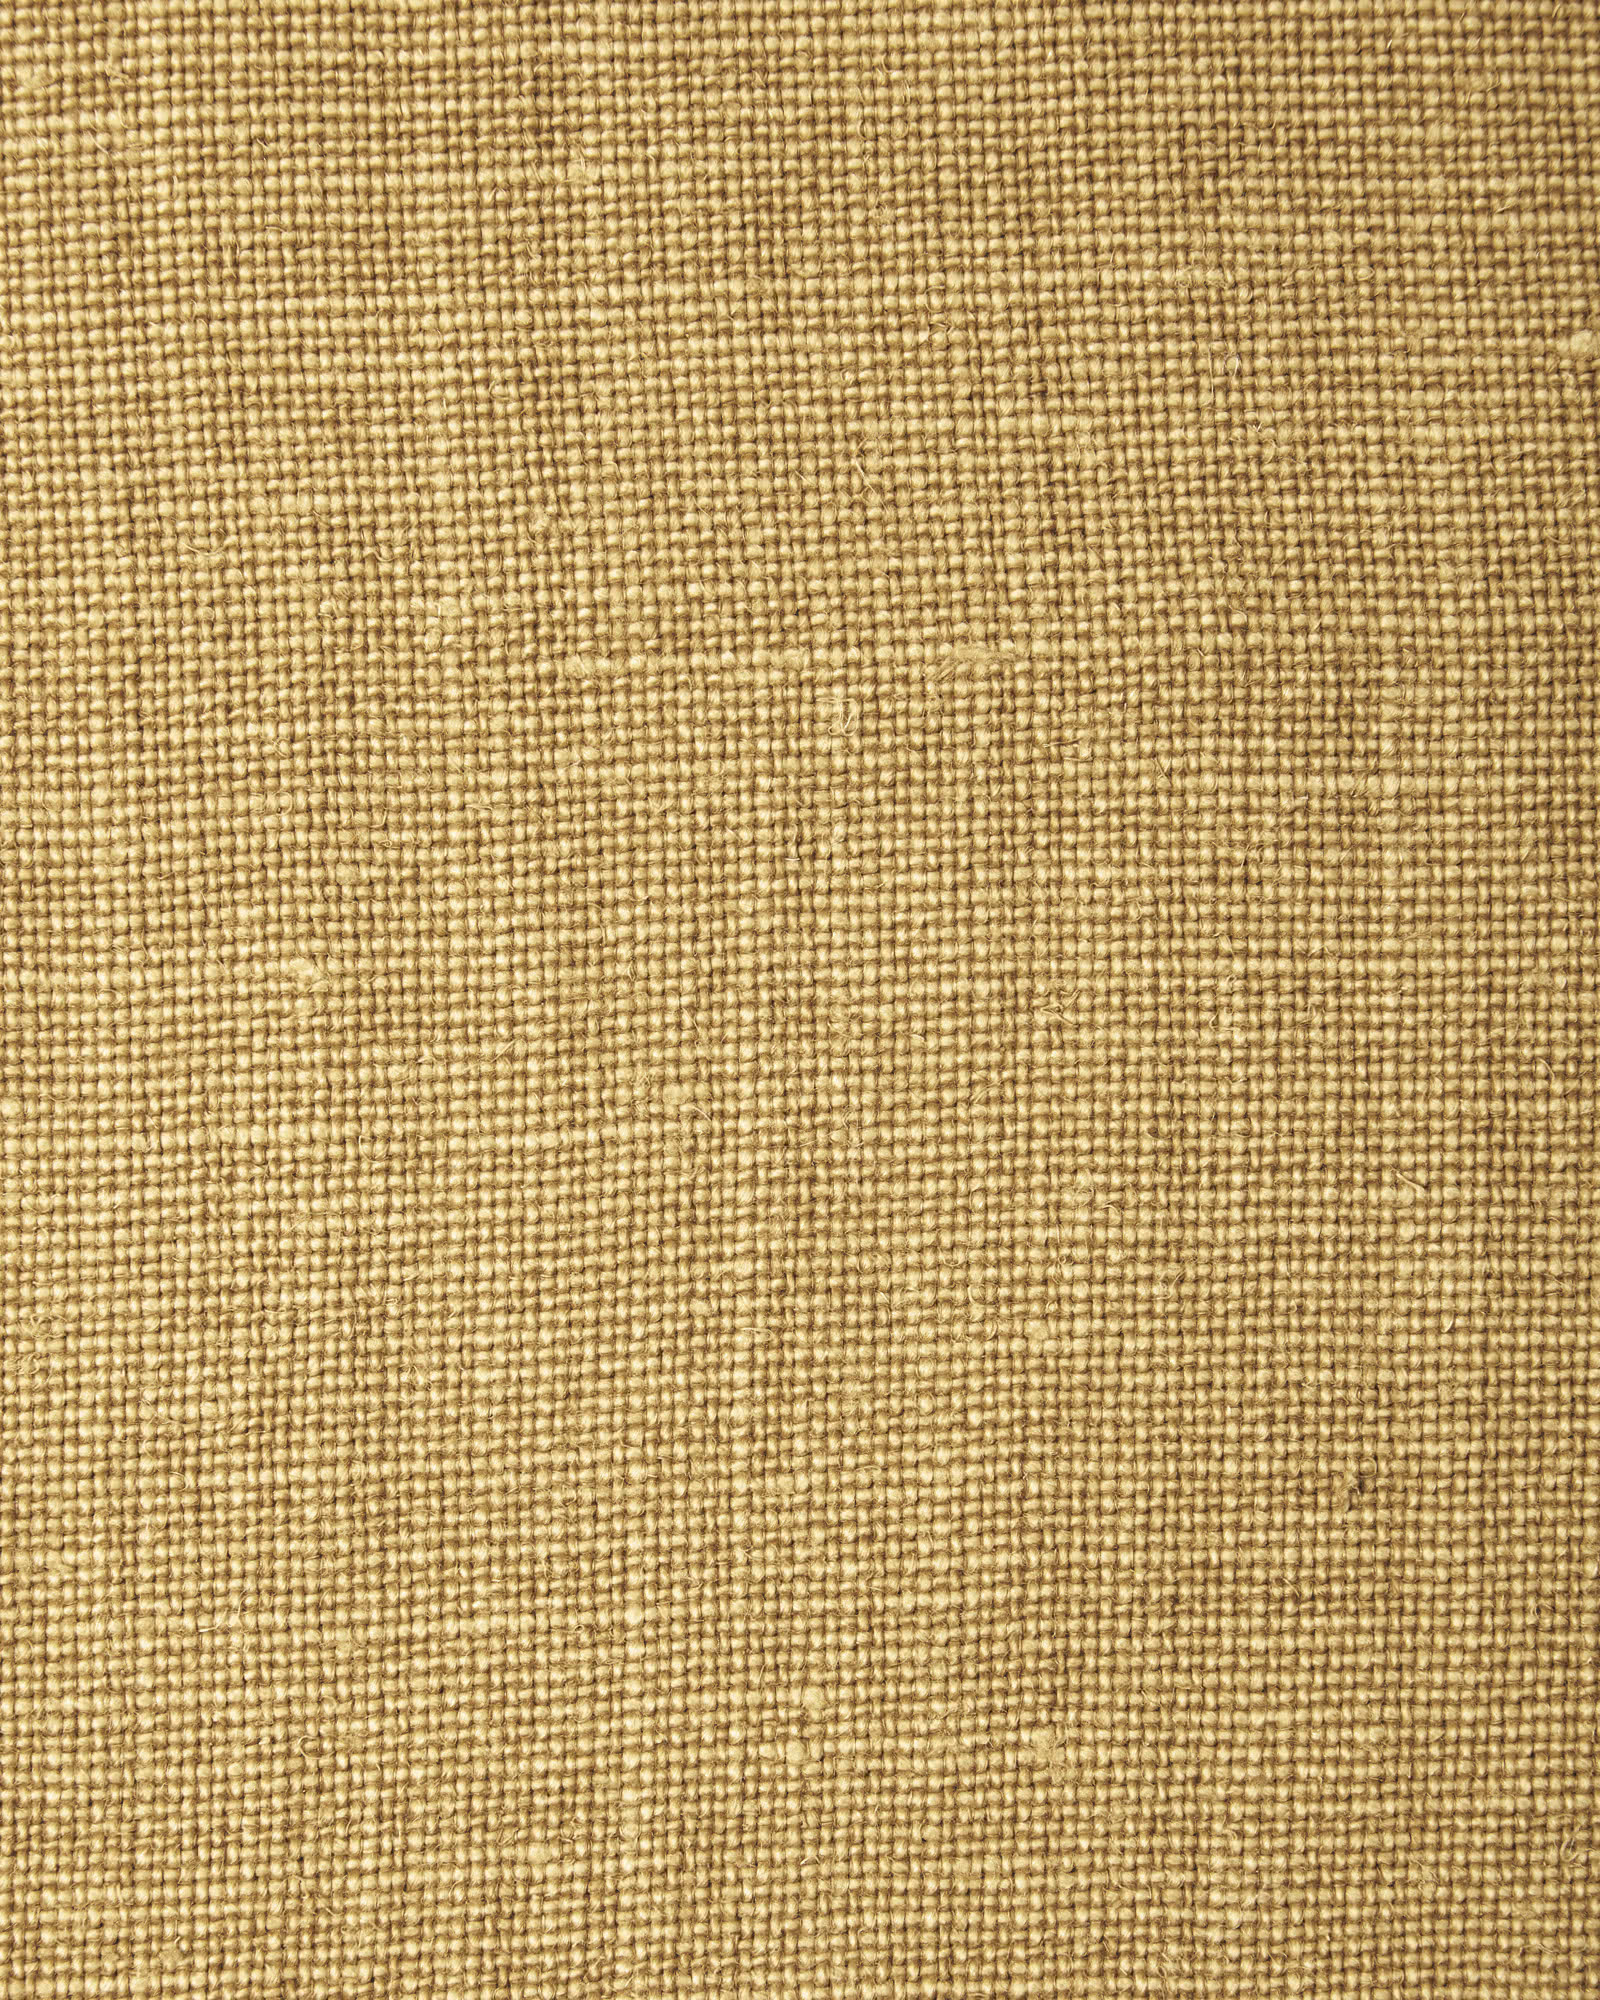 Fabric by the Yard – Metallic Linen Blend,